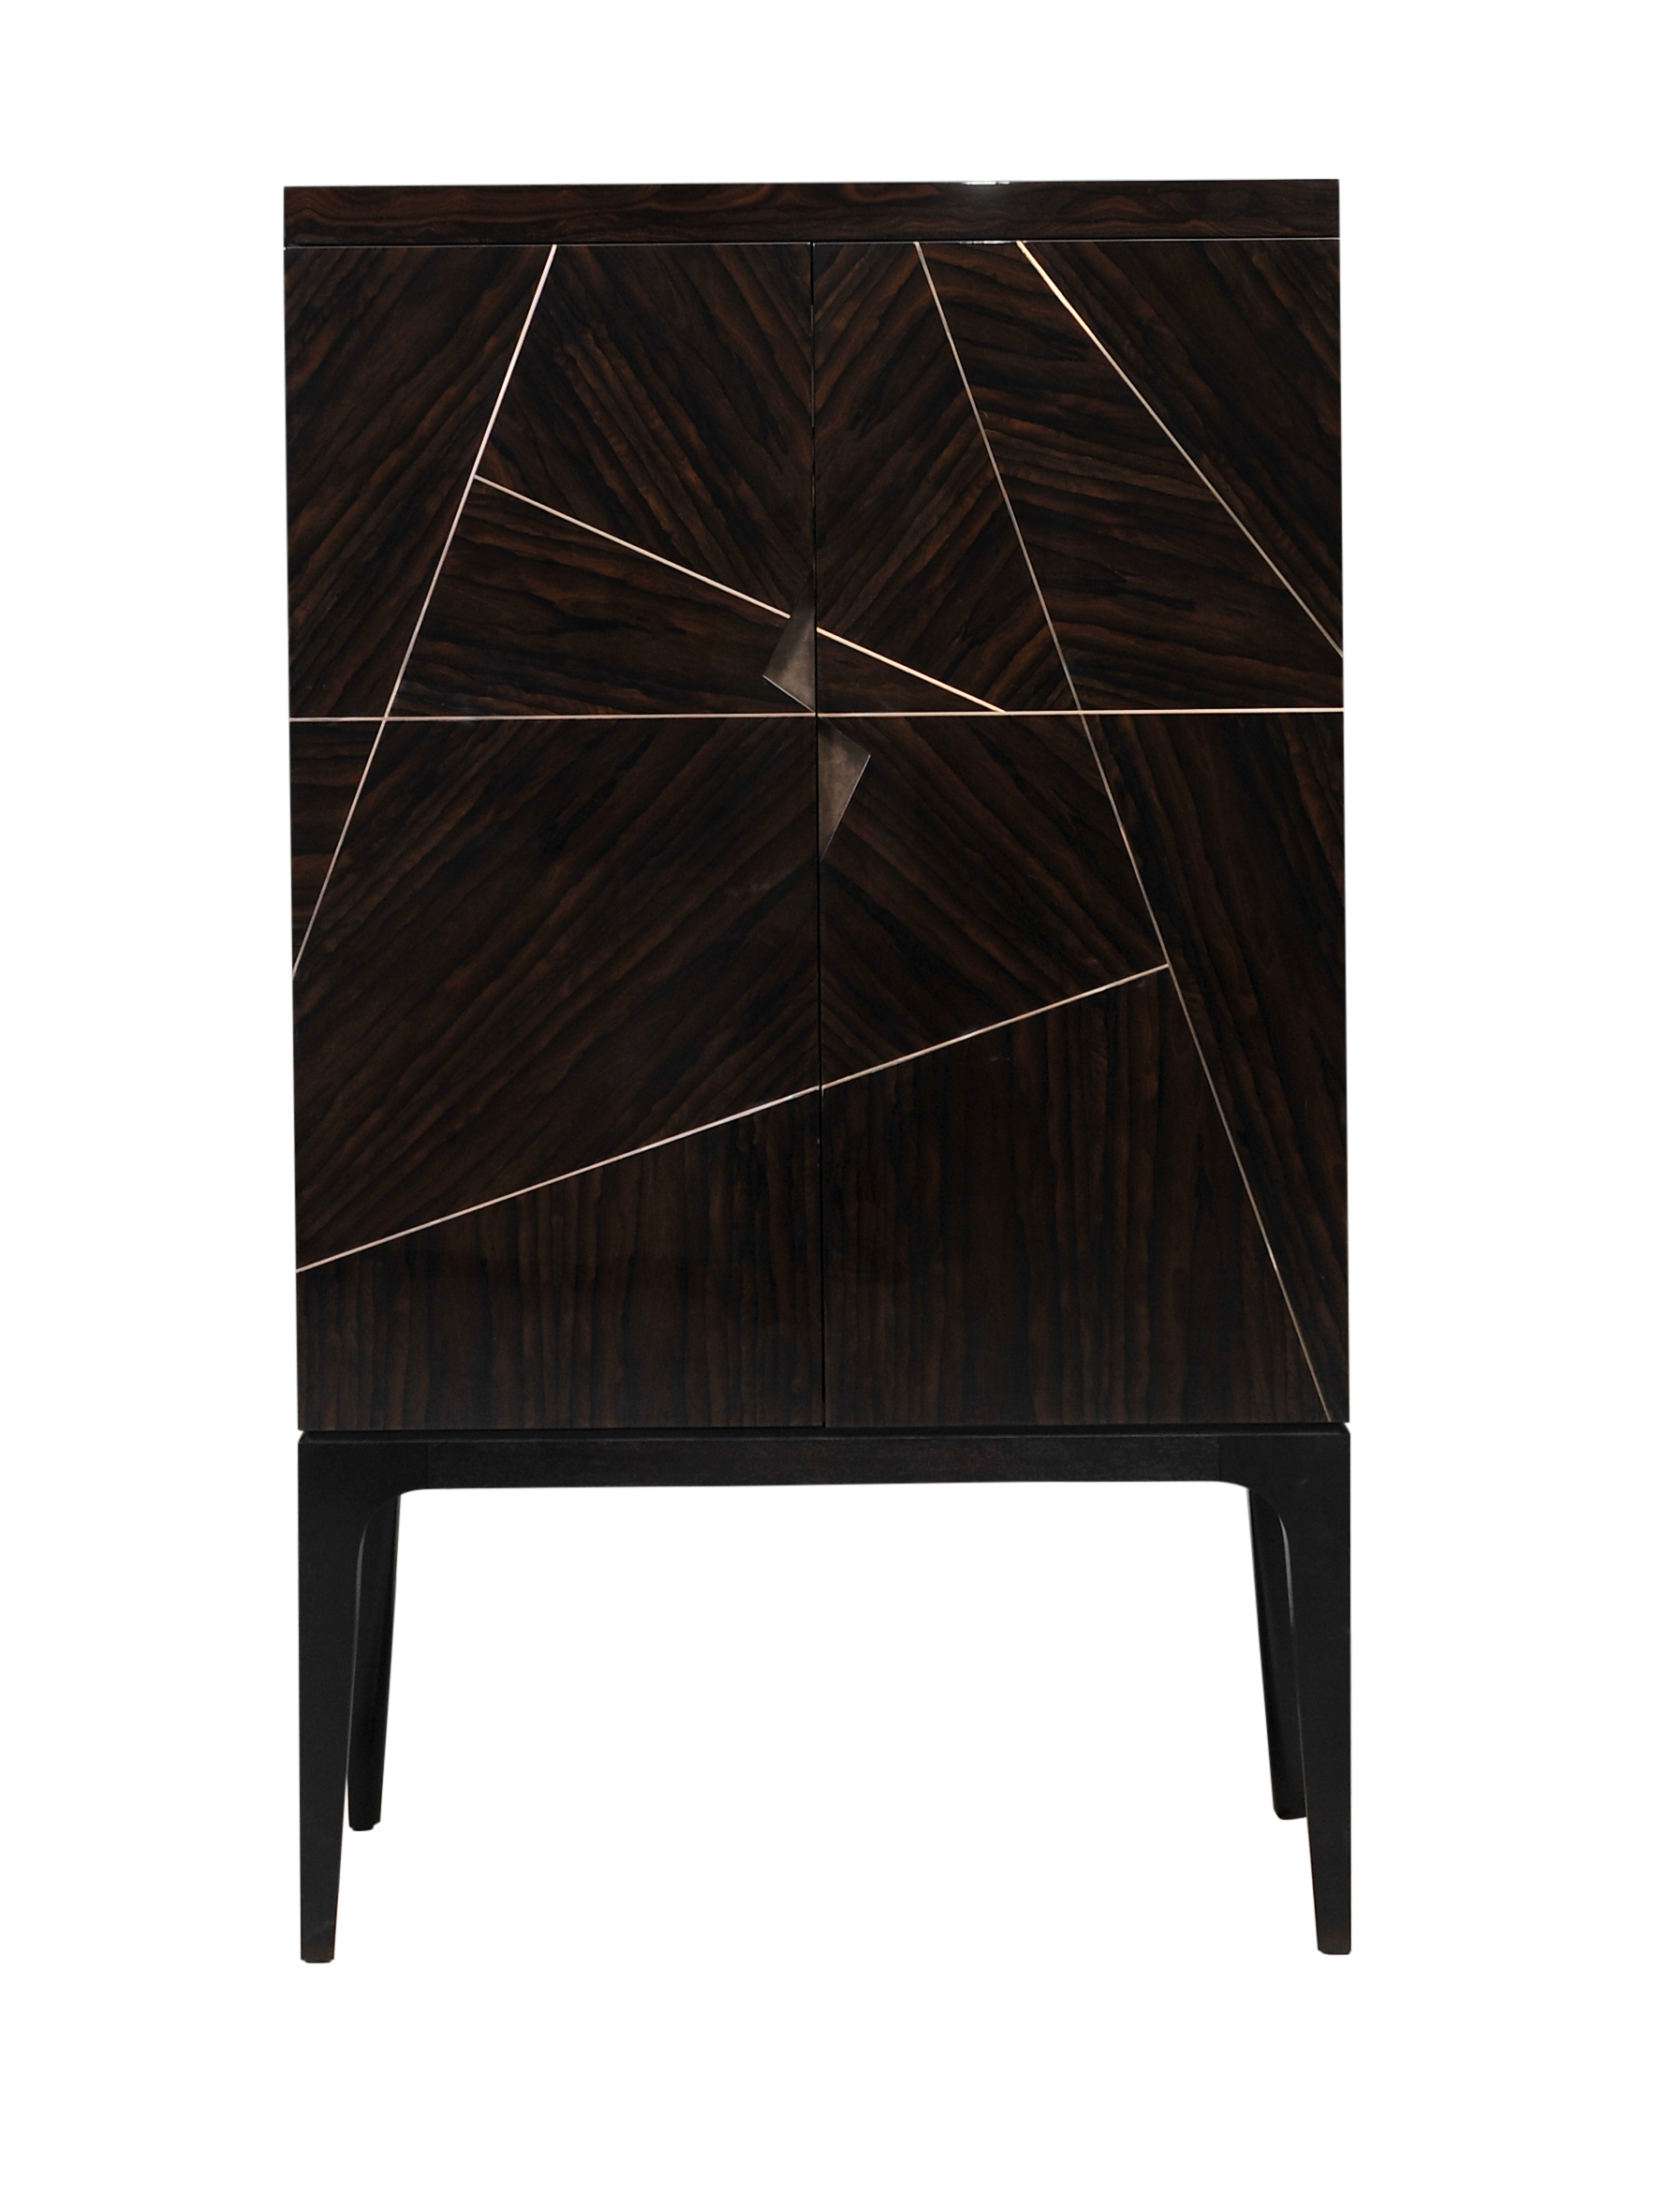 Decca London Bespoke Dry Minibar // Bespoke Furniture Manufacturer